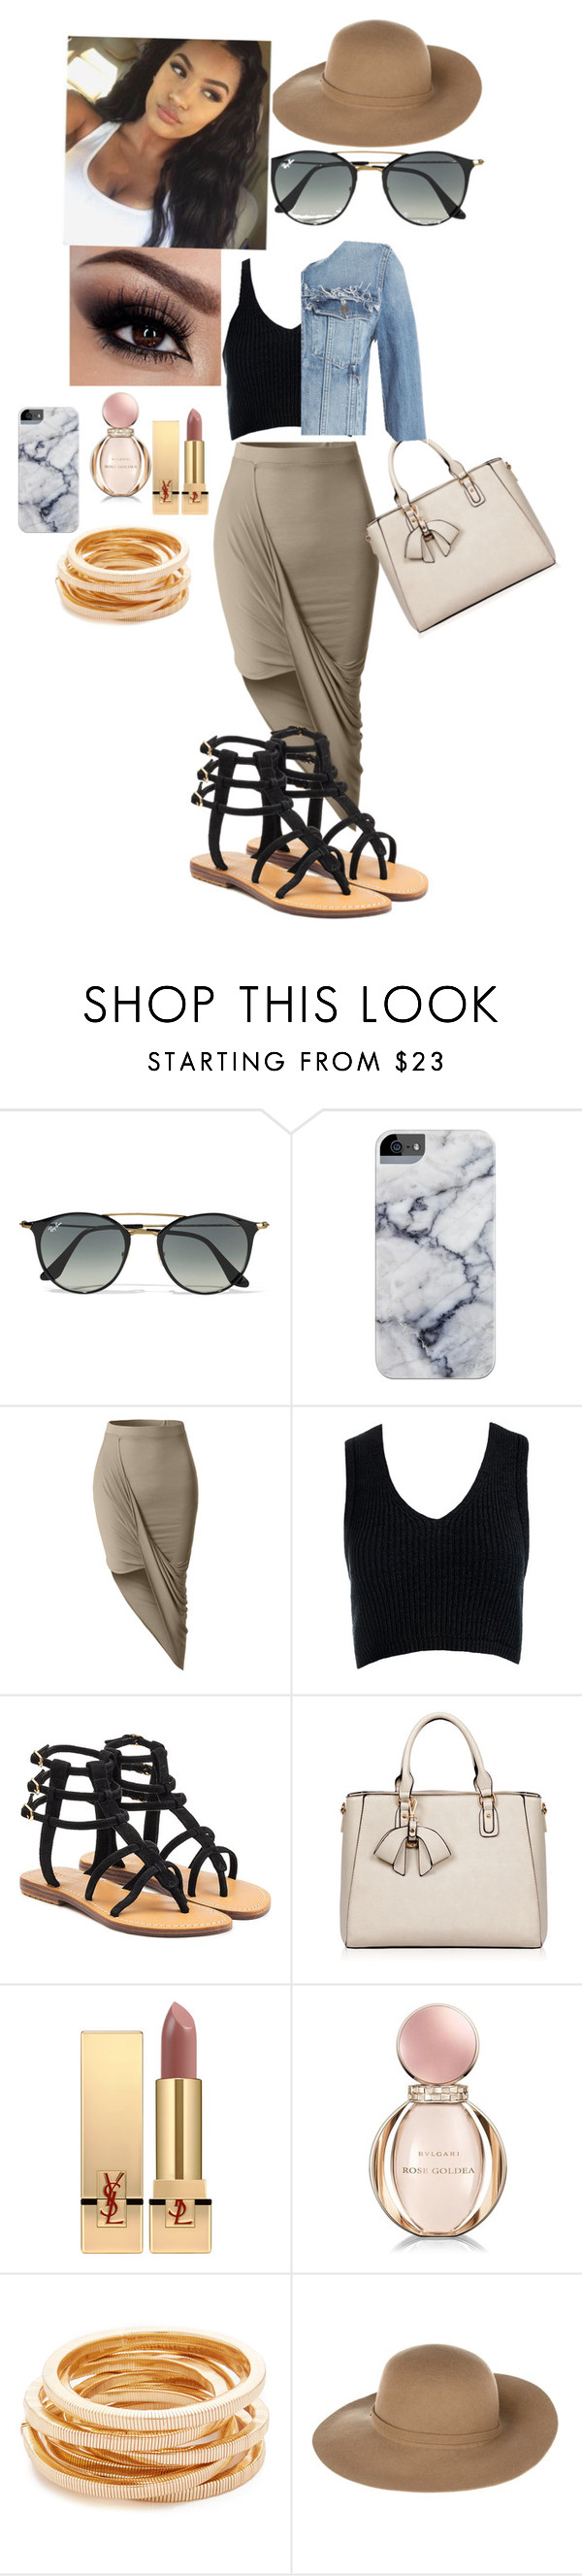 """""""WAGS MIAMI"""" by laylakristion on Polyvore featuring Ray-Ban, LE3NO, Sans Souci, Mystique, Yves Saint Laurent, Bulgari, Kenneth Jay Lane, Armani Jeans and Paige Denim"""